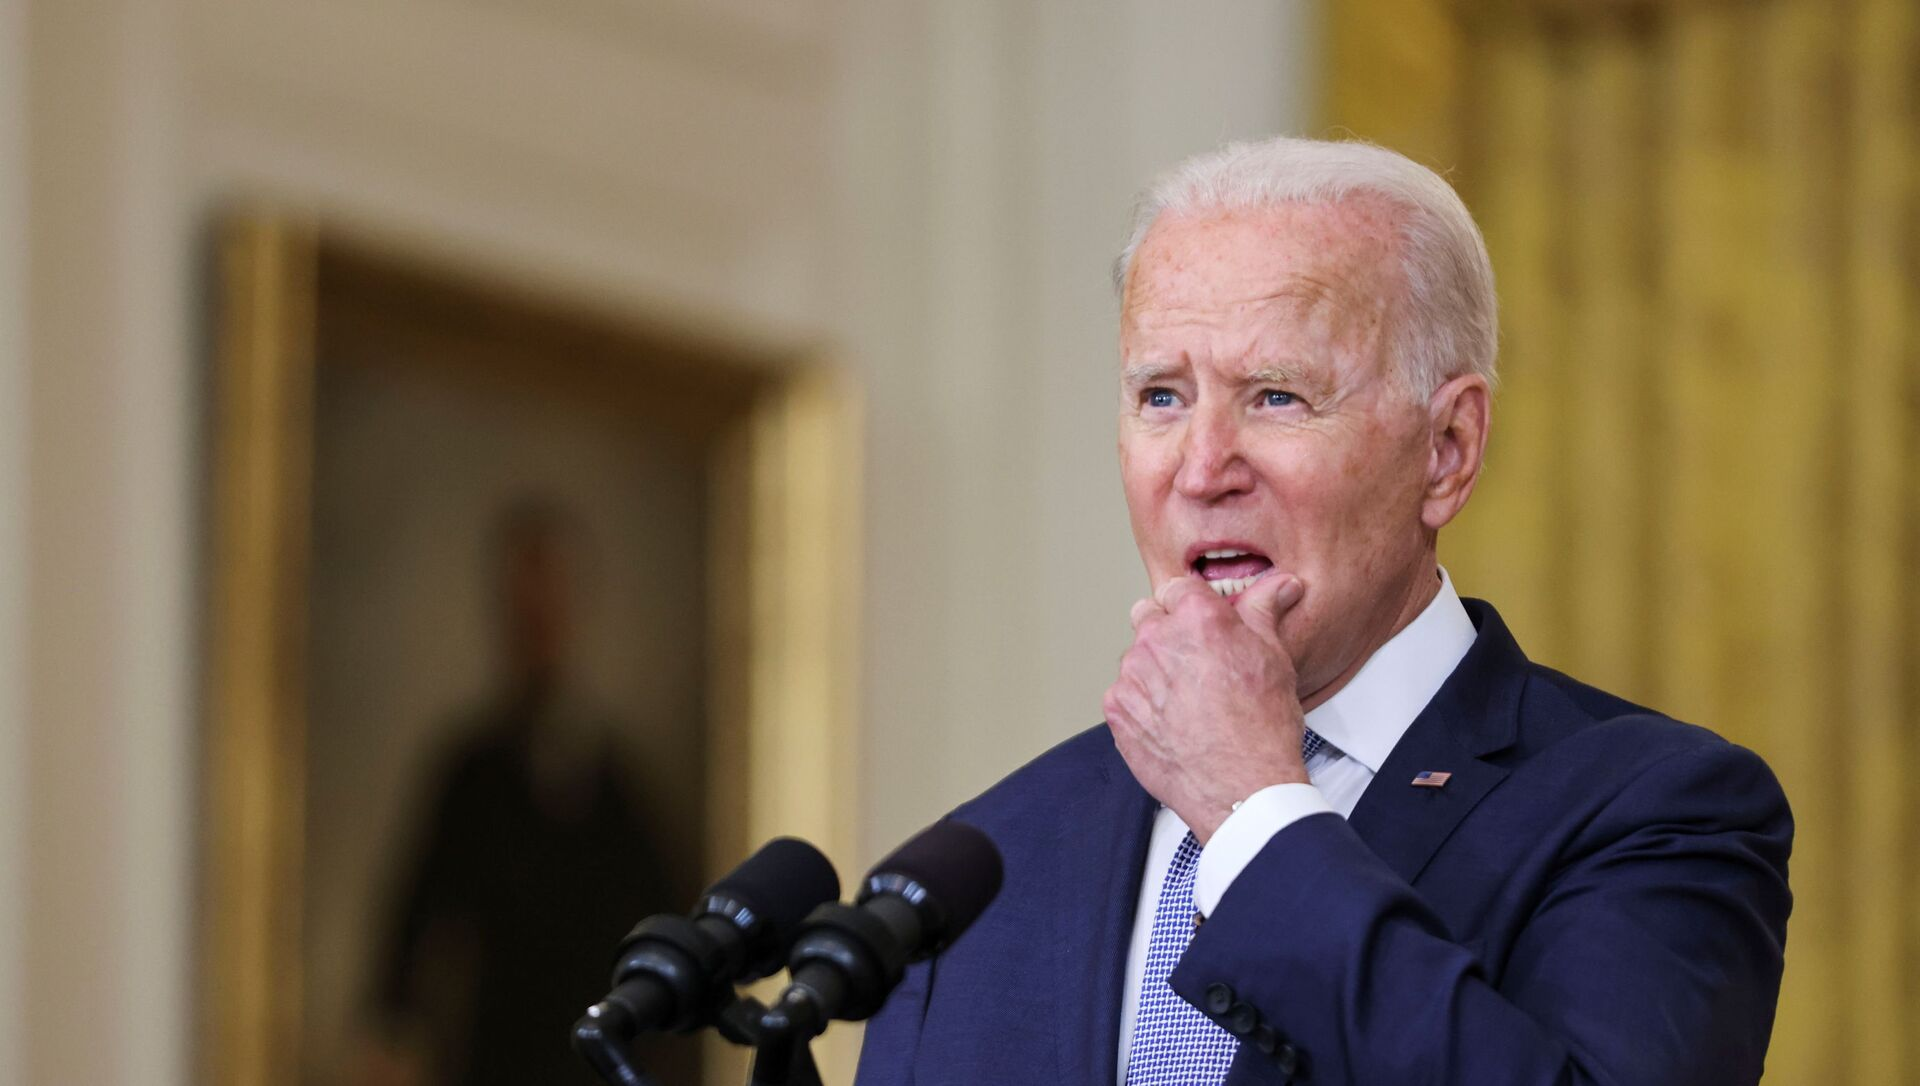 U.S. President Biden discusses administration efforts to lower drug prices in a speech at the White House in Washington - Sputnik International, 1920, 15.08.2021